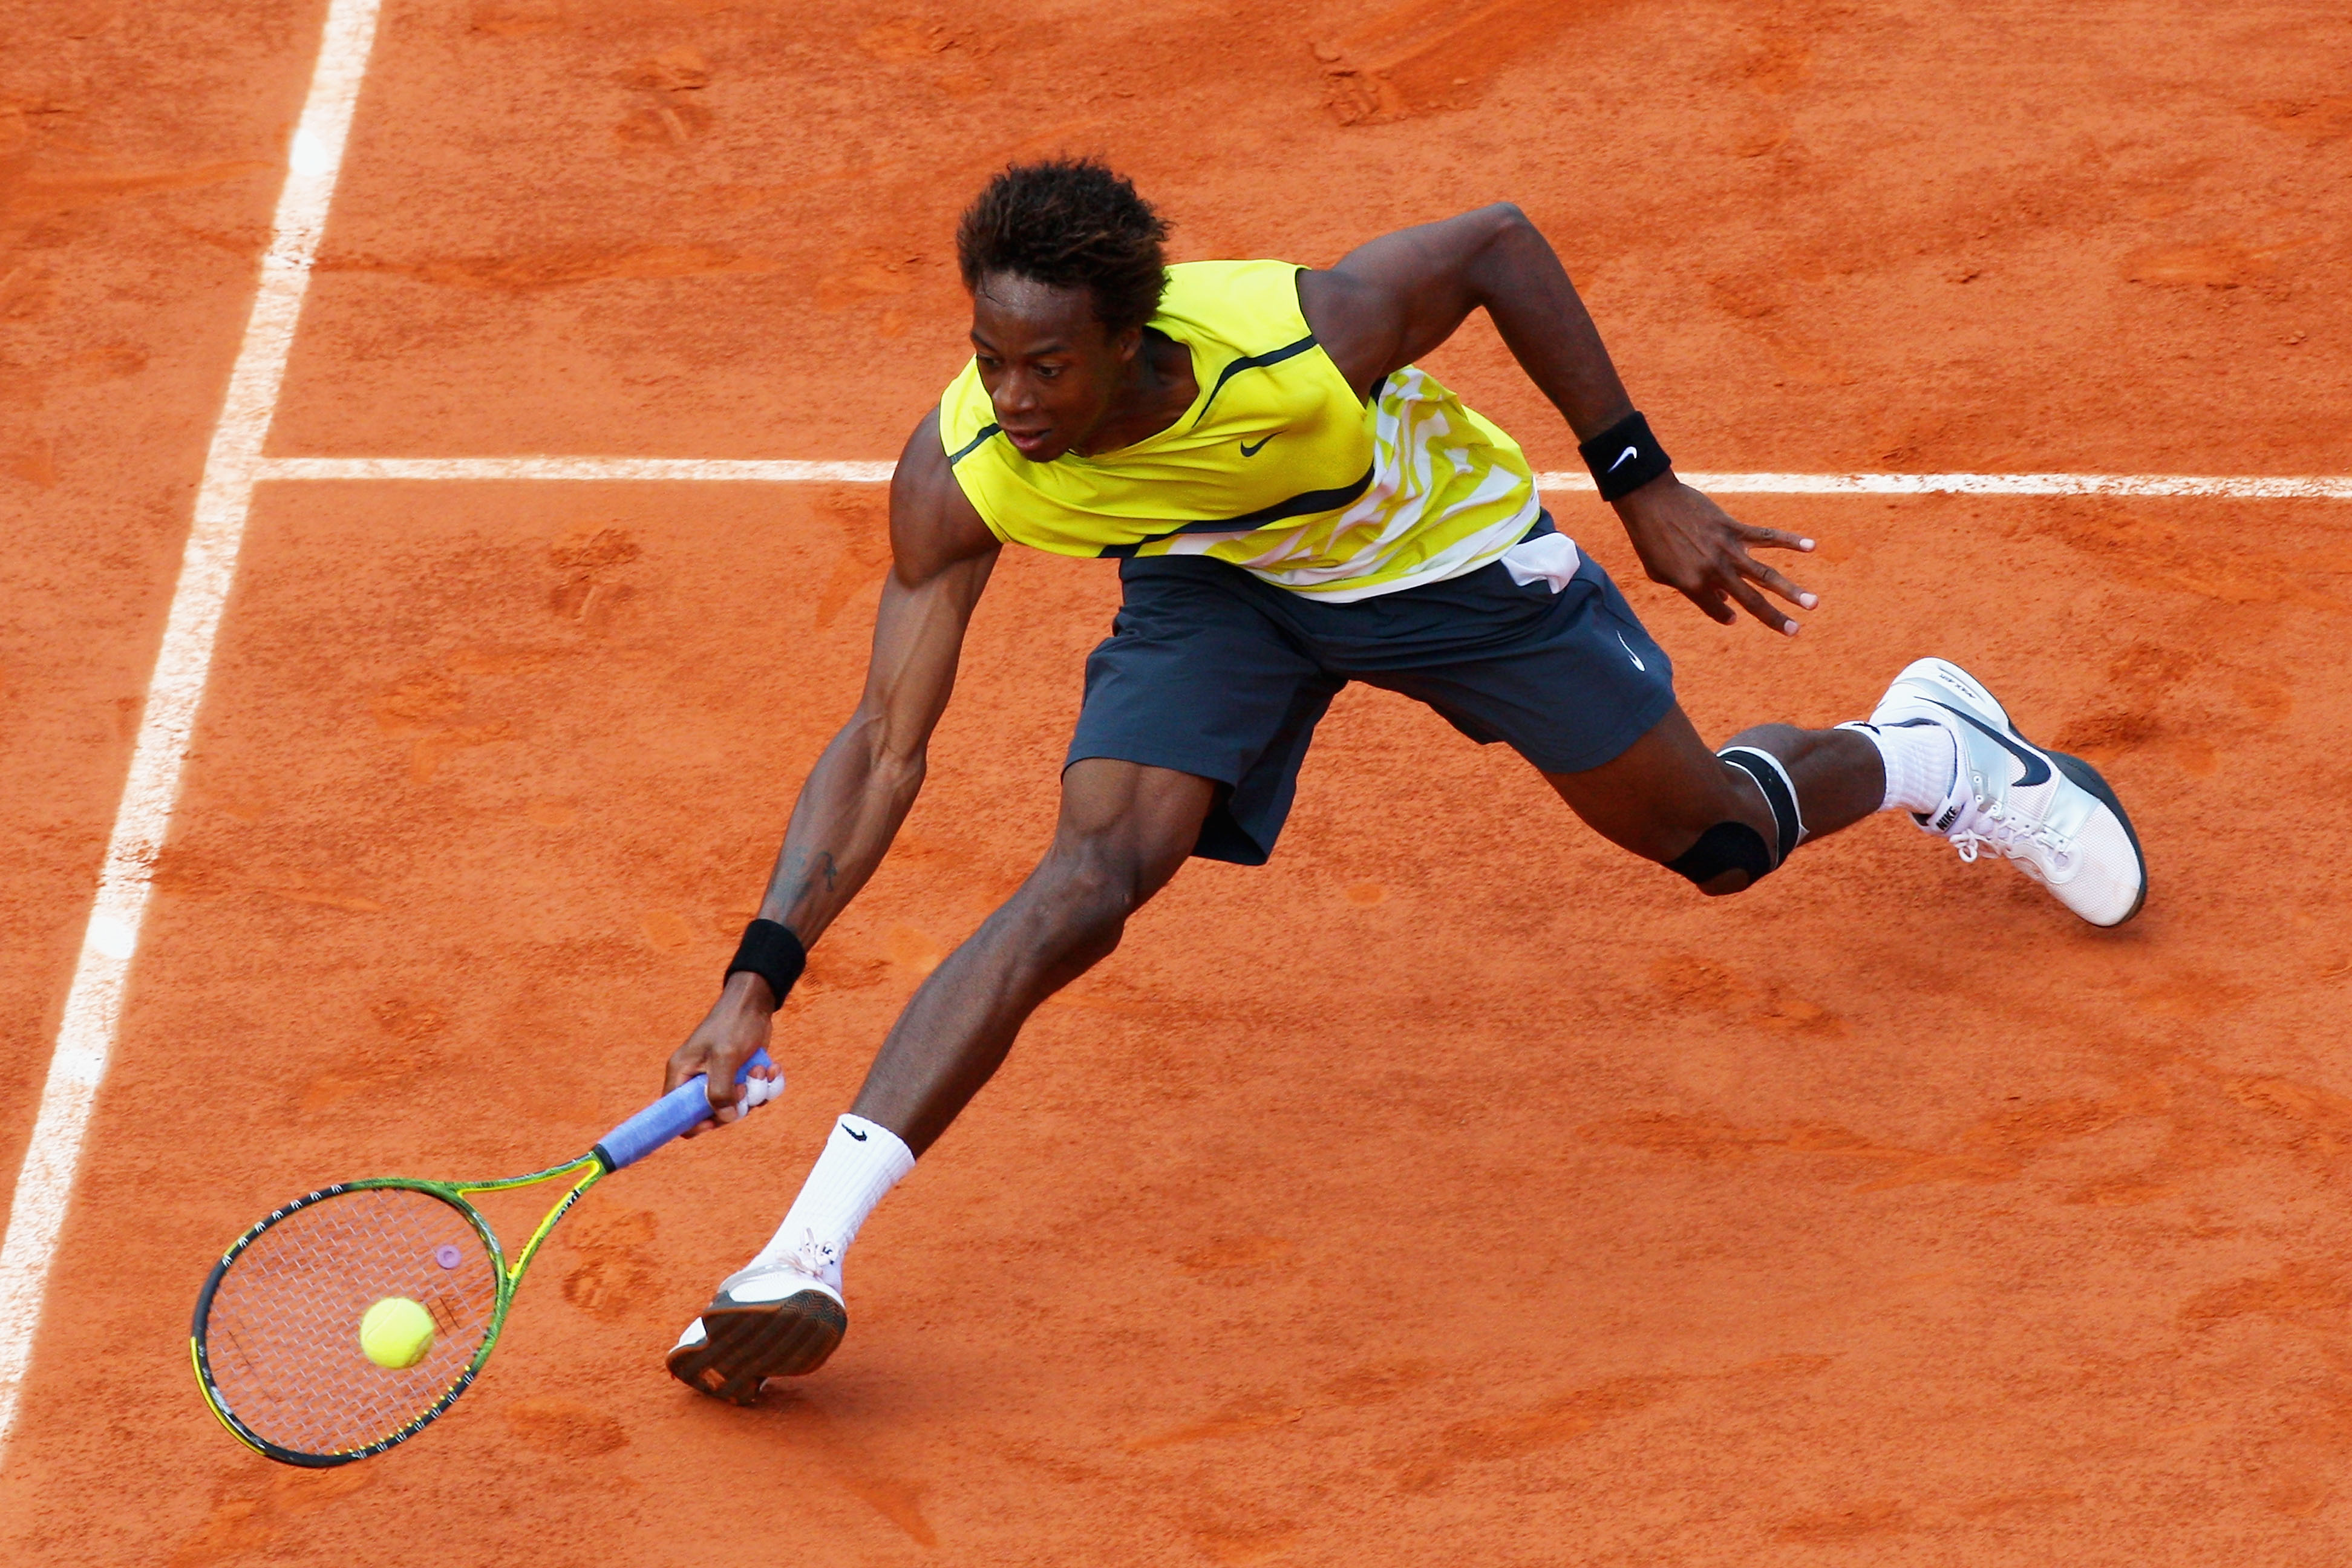 PARIS - JUNE 03:  Gael Monfils of France plays a forehand during the Men's Singles Quarter Final match against Roger Federer of Switzerland on day eleven of the French Open at Roland Garros on June 3, 2009 in Paris, France.  (Photo by Ryan Pierse/Getty Im